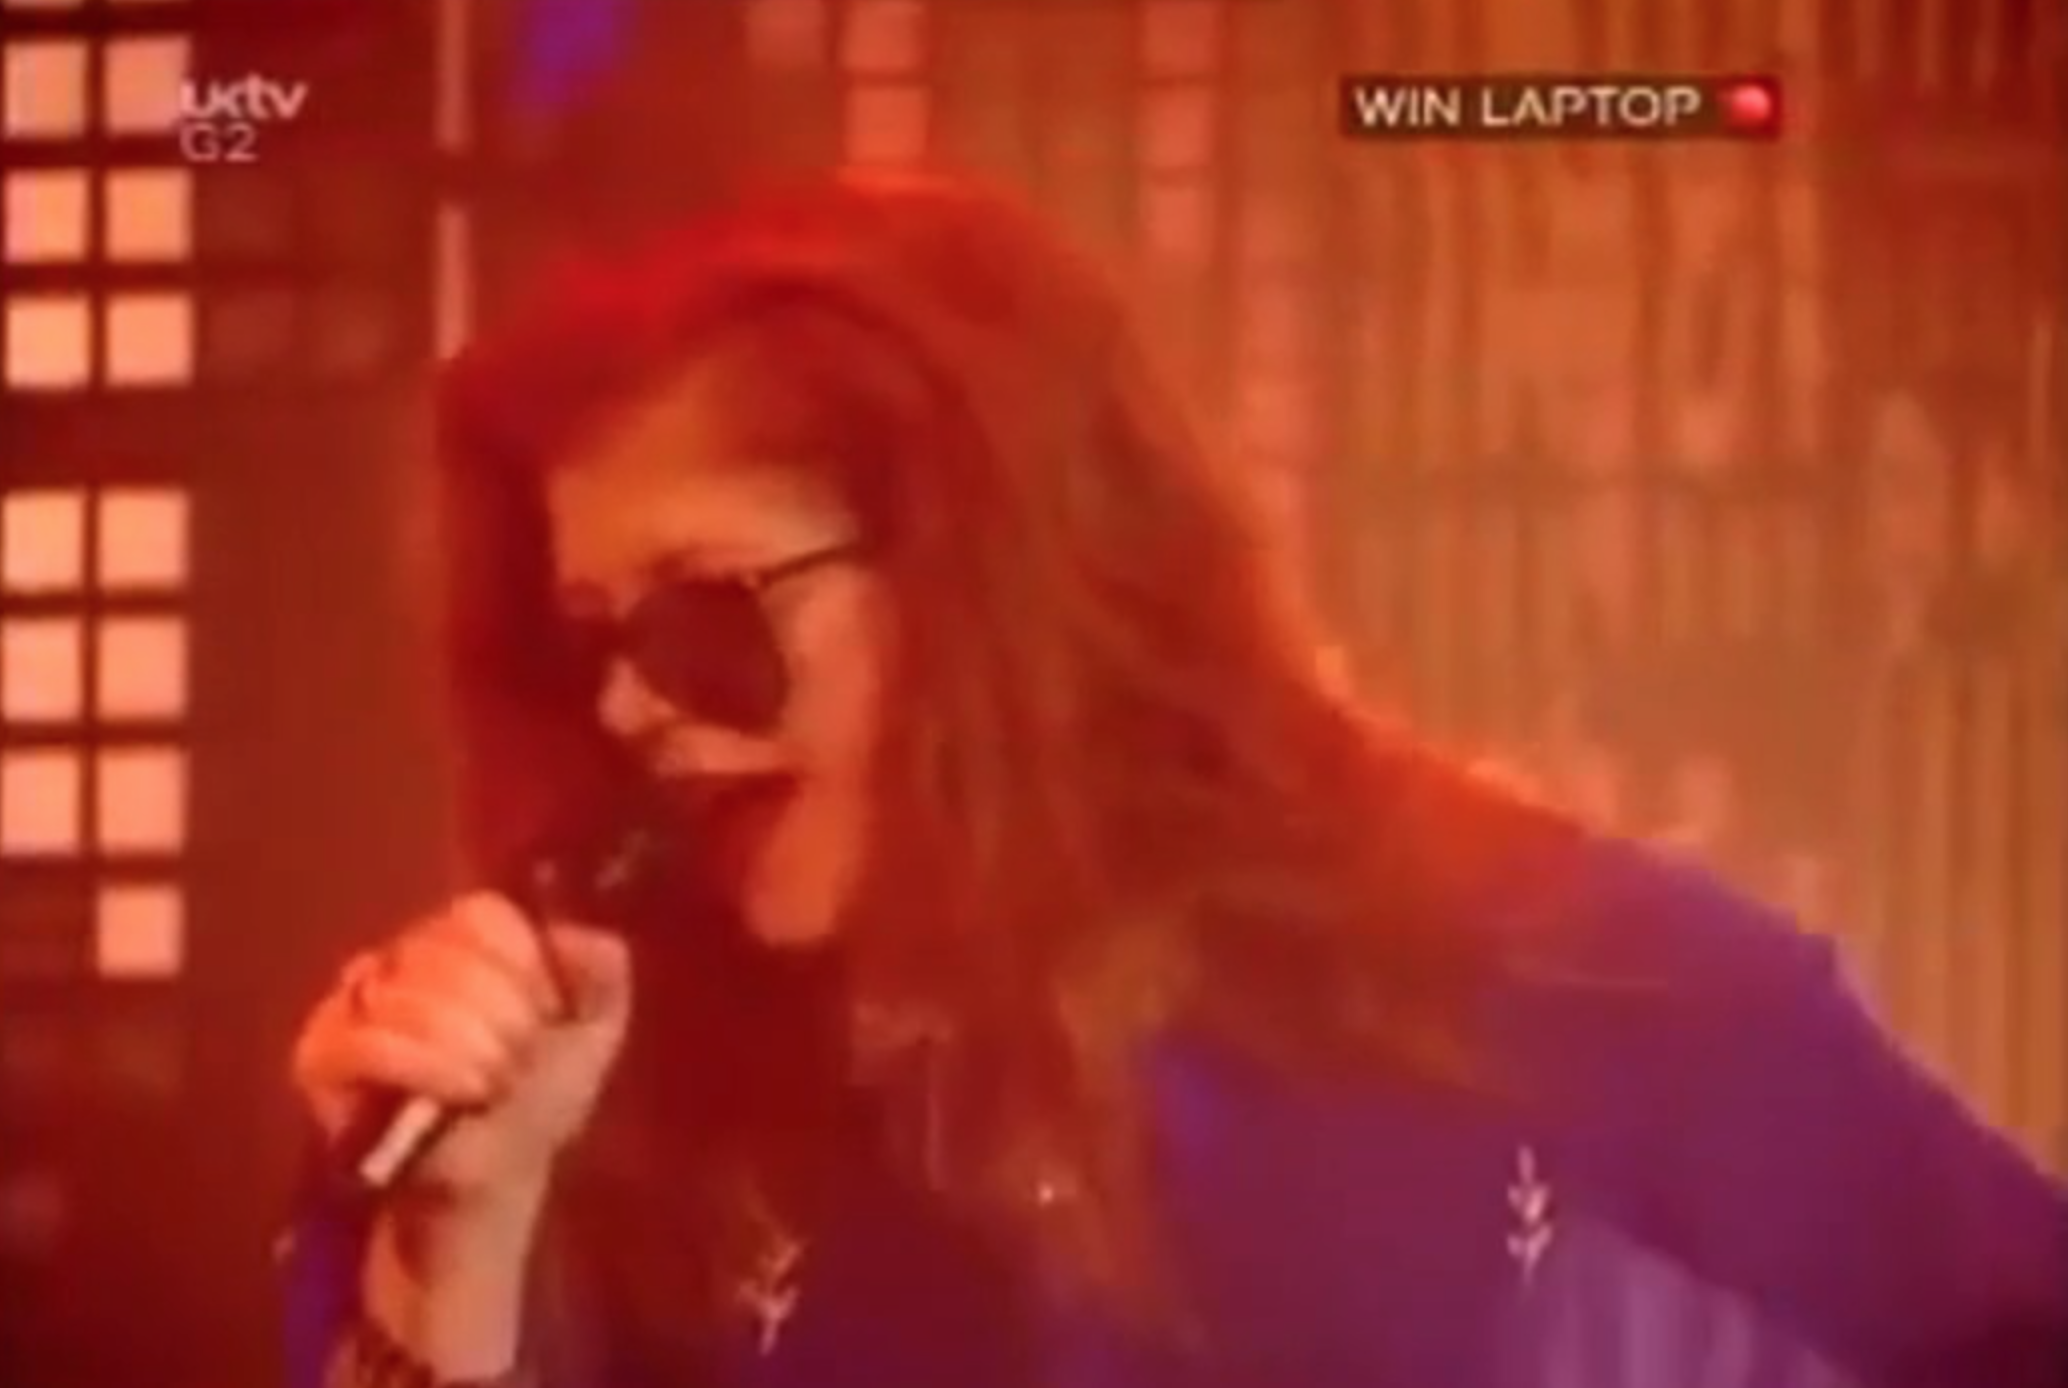 Singer Kirsty MacColl, who sang alongside The Pogues for a 'Fairytale of New York' cover, once changed a controversial lyric live on Top of the Pops in 1992. (Screenshot via YouTube)